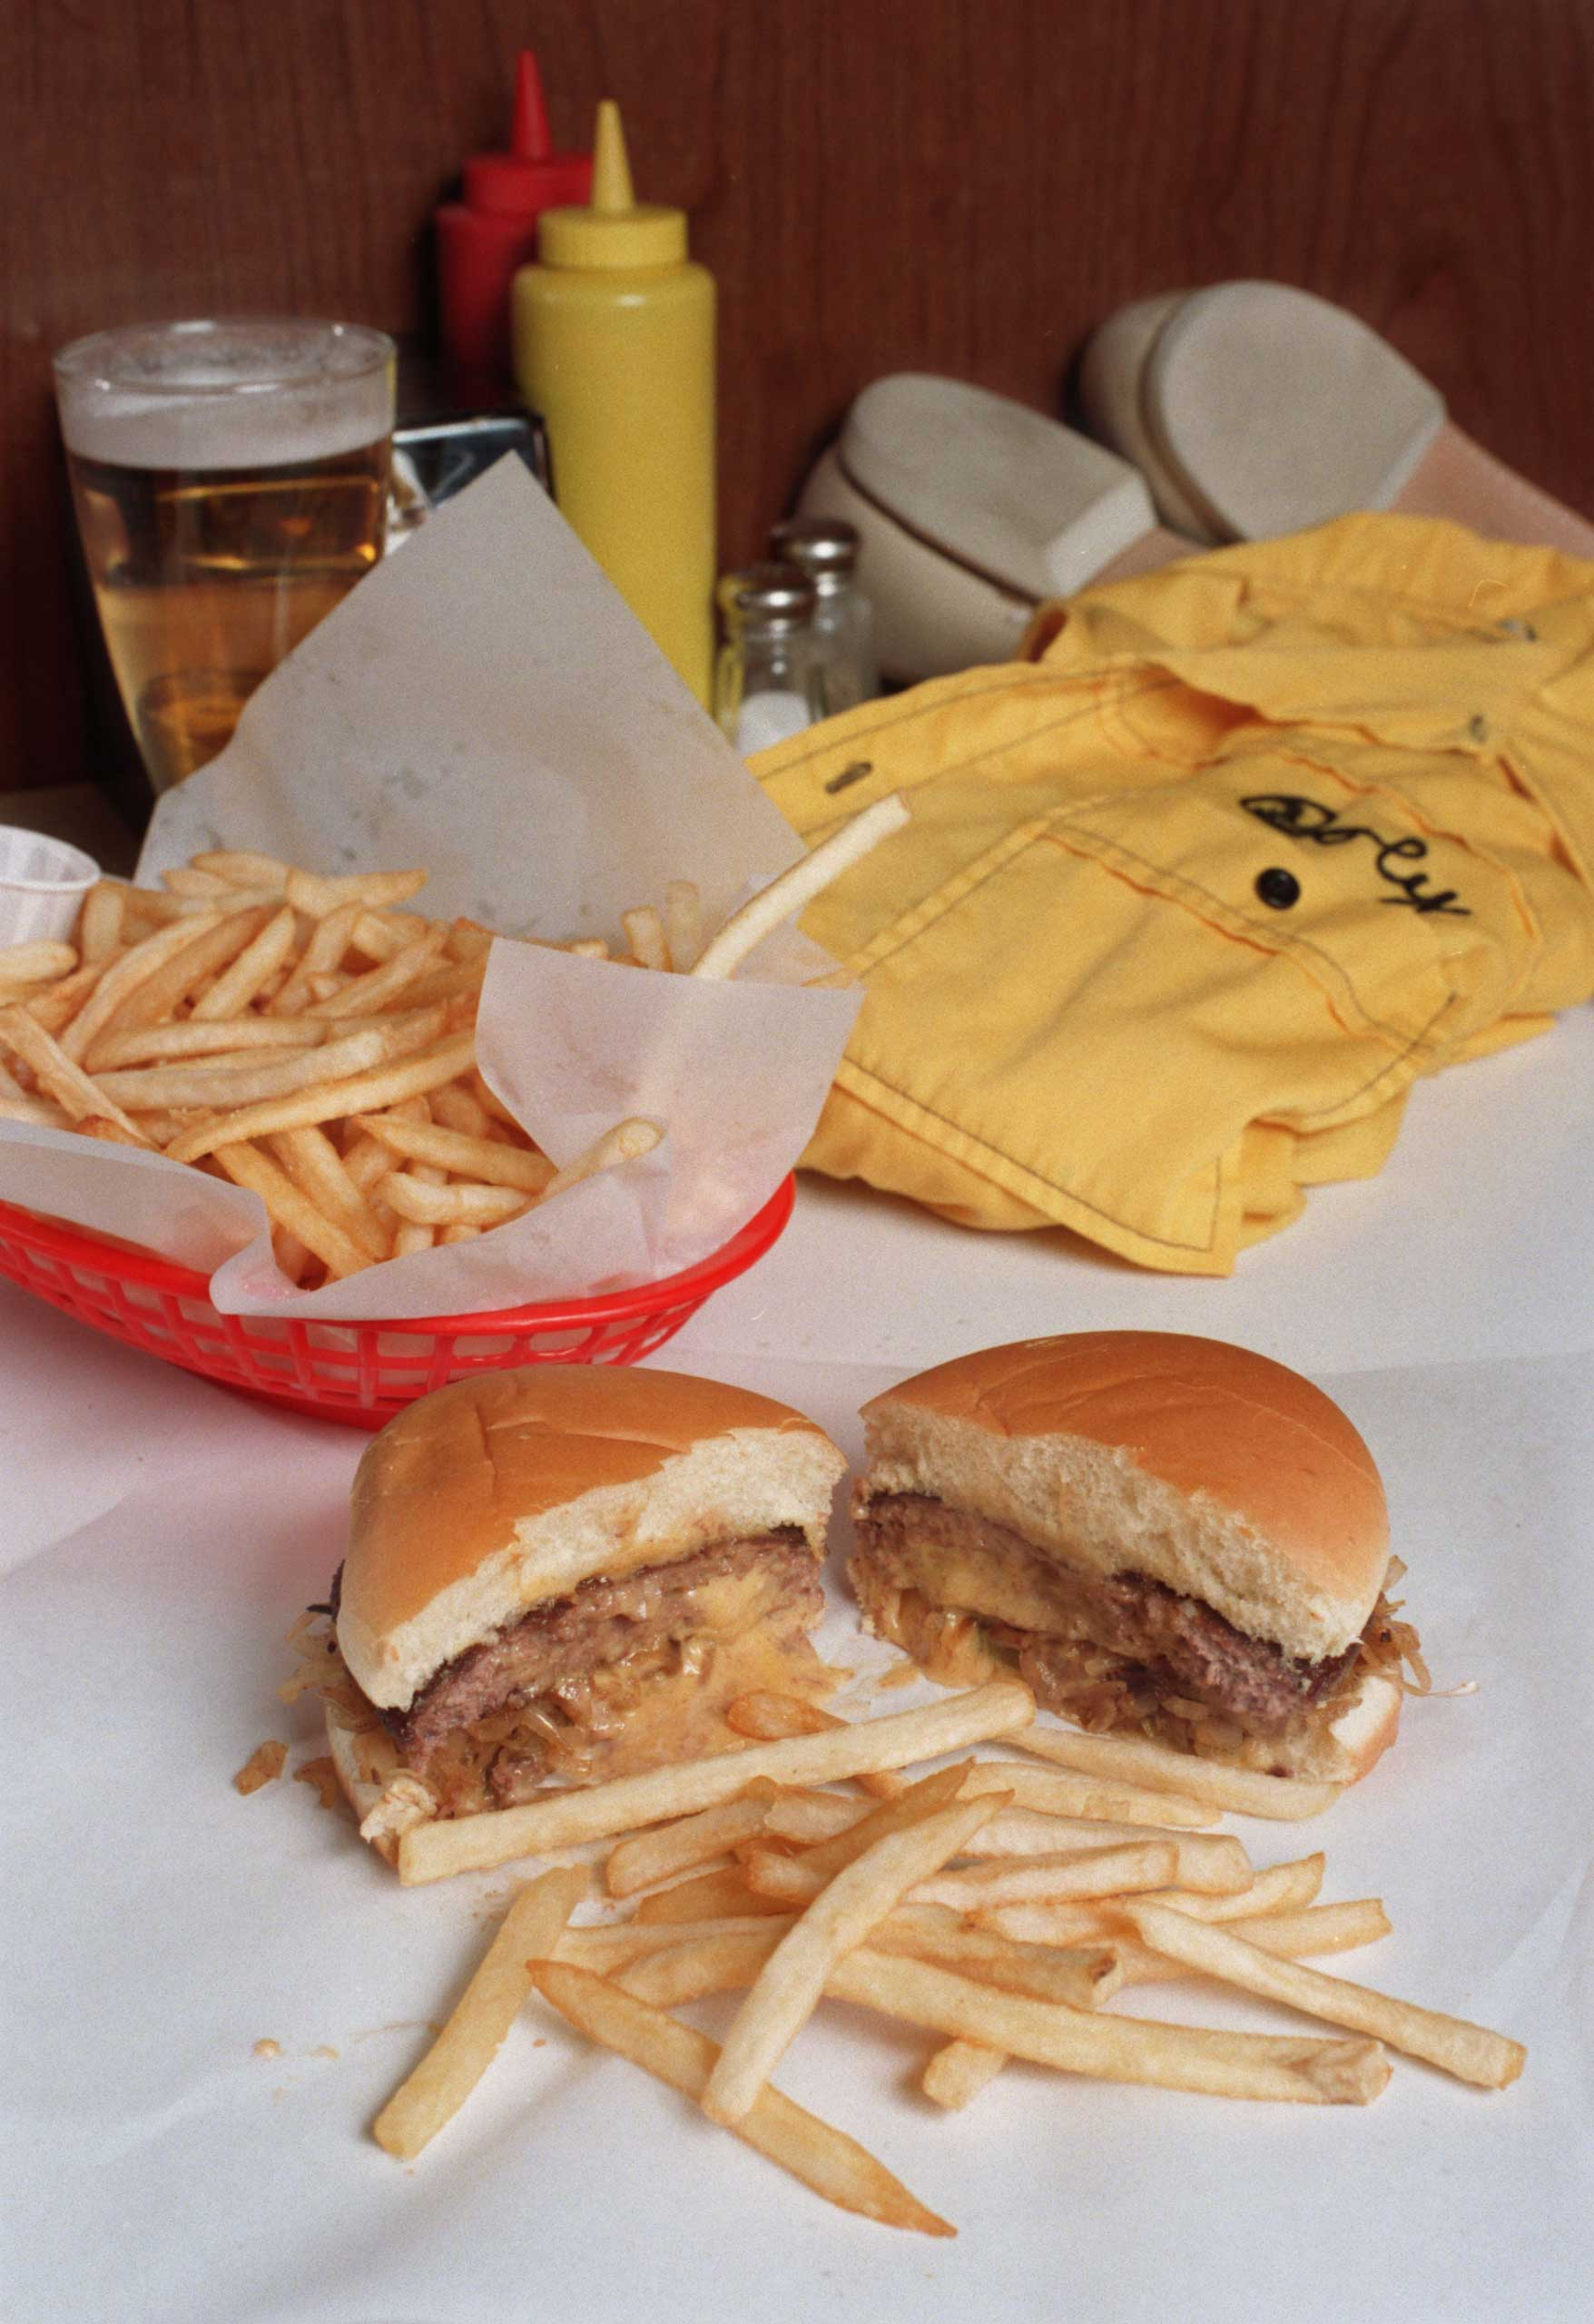 Although this twist on the cheeseburger—in which the cheese is melted inside the patty—was reportedly invented in the 1920s, when chefs were still experimenting with the burger, it gained national attention in 2008, thanks to a feud between two Minneapolis bars that both claim to have  invented  it. Since then, there have been numerous imitators, proving that a little innovation and a dash of hype is all it takes to reinvigorate enthusiasm for a classic. Correction: The original version of this story misstated the date of invention of the Jucy Lucy. It was put on the menu at Matt's in 1954.